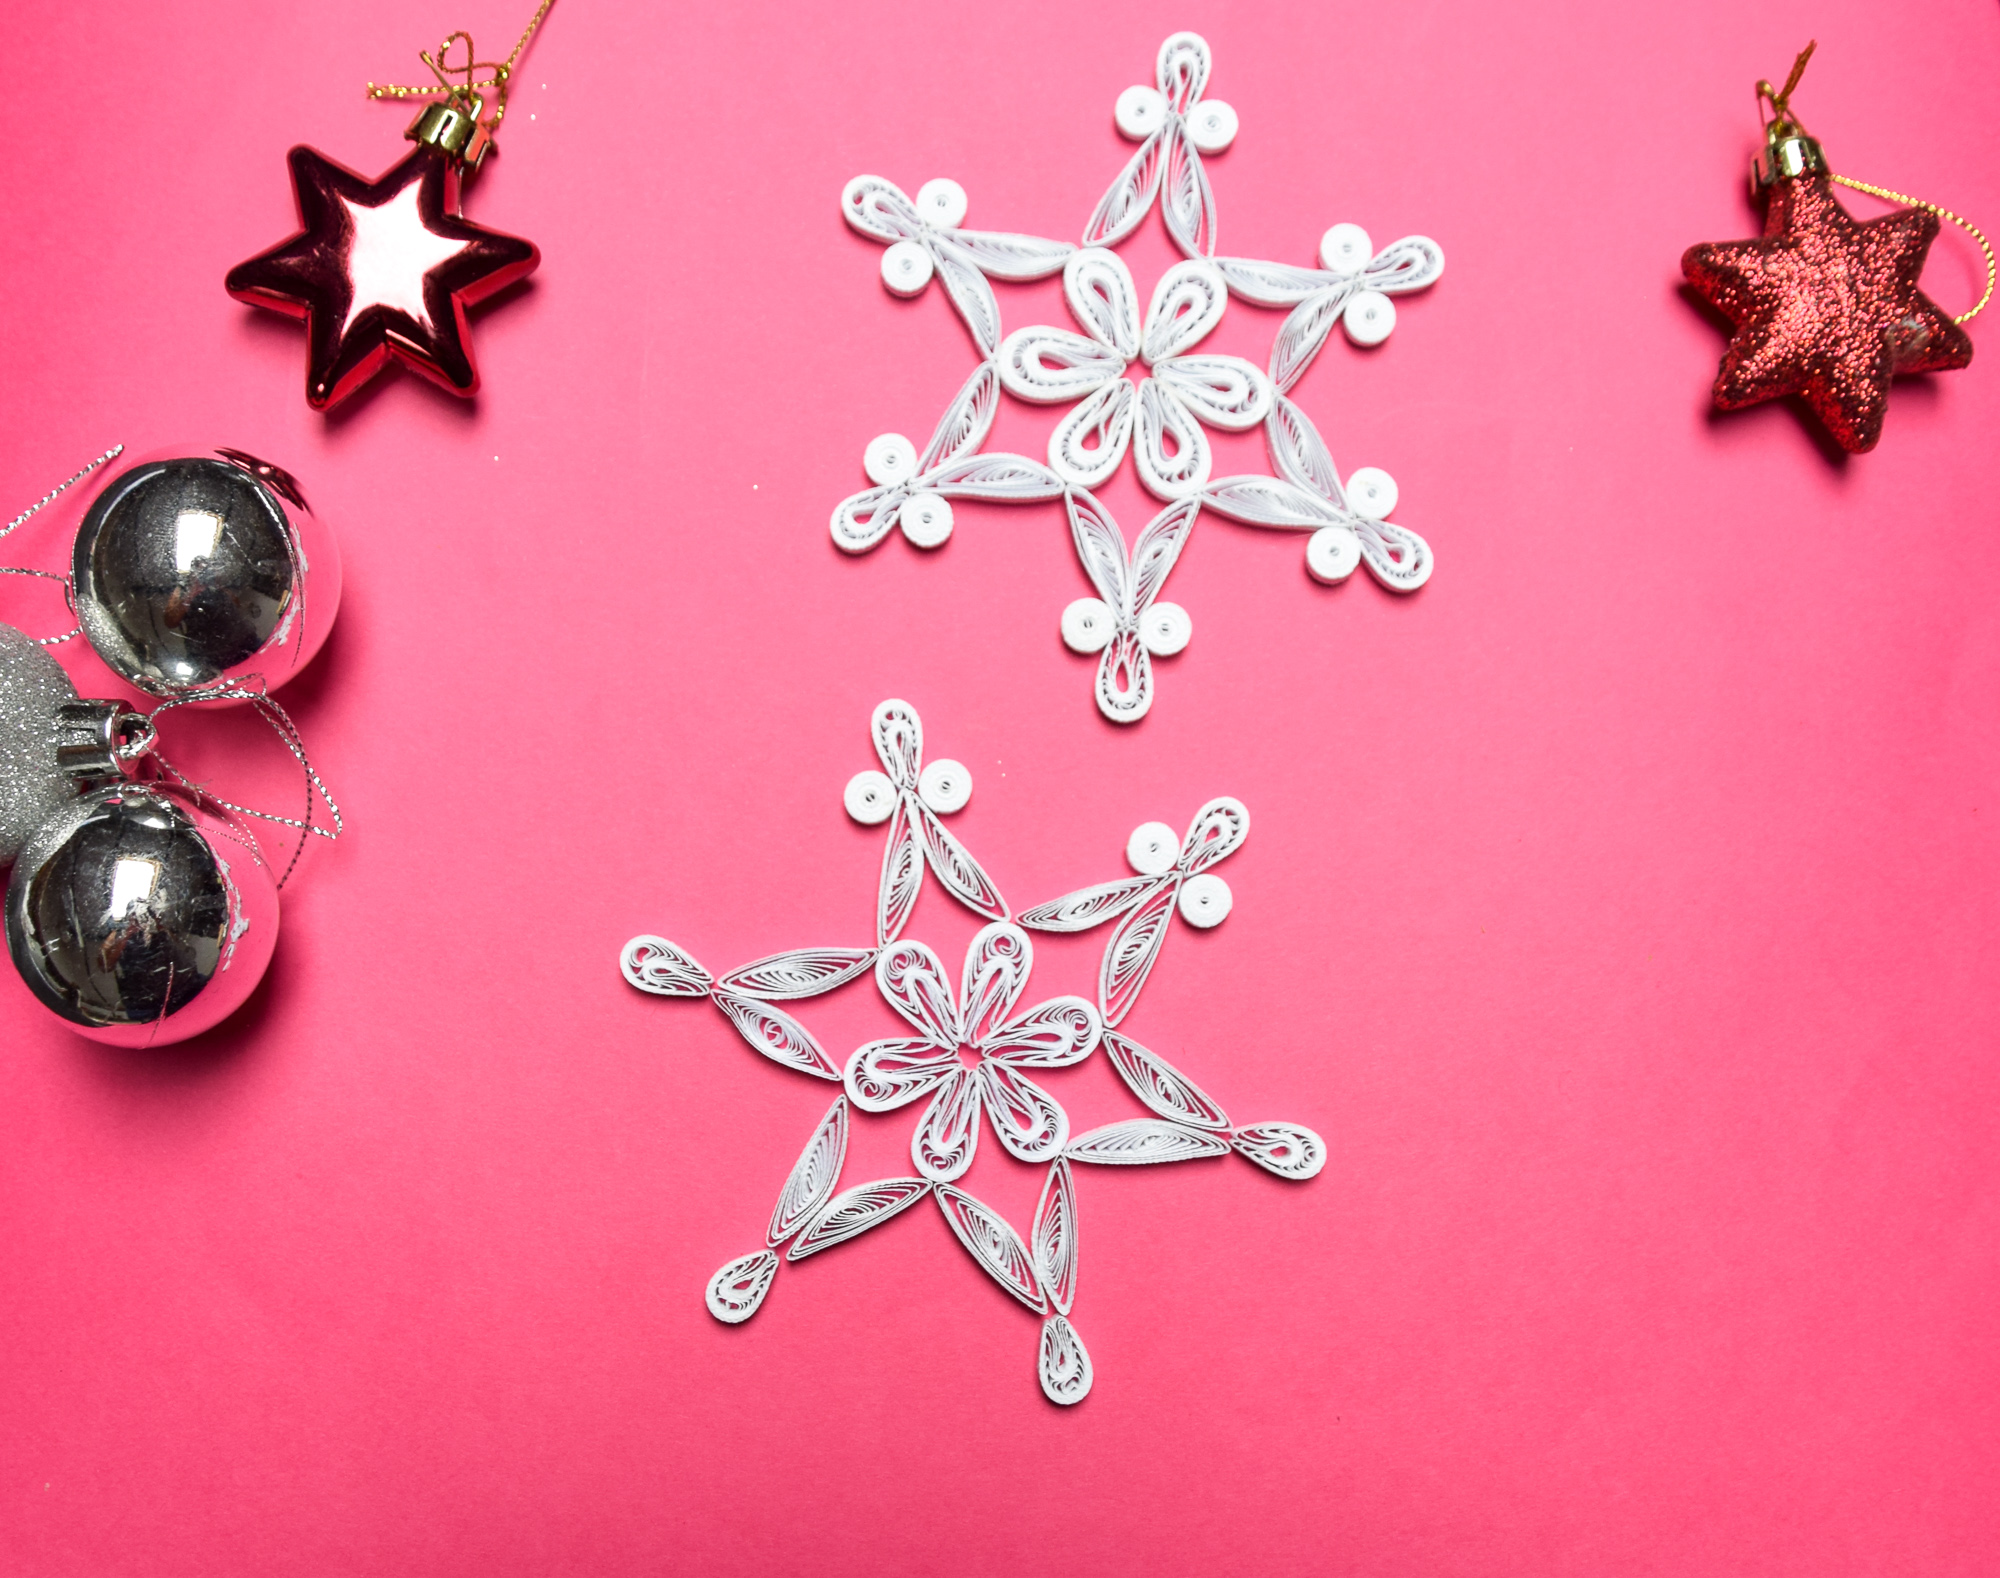 How to DIY a Paper Tree Ornament   Quilling Snowflake Tutorial #quilling #howto #tutorial #paperart #diyproject #diy #treeornament #snowflake